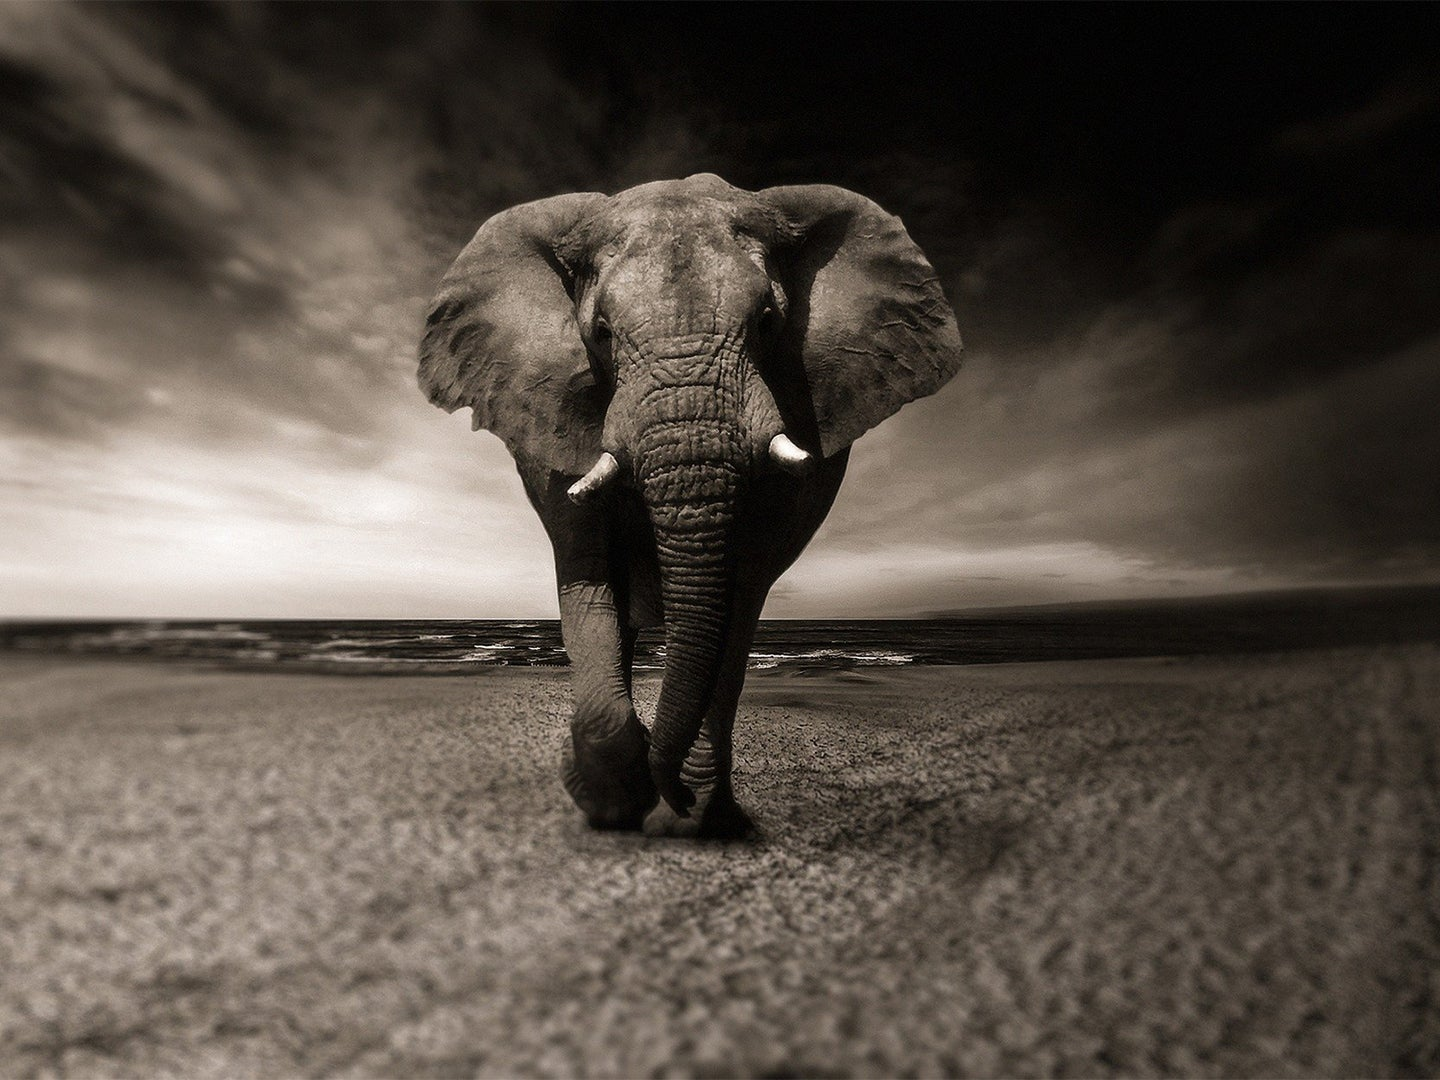 Black and white image of an elephant walking towards the camera on a dry dirt ground.